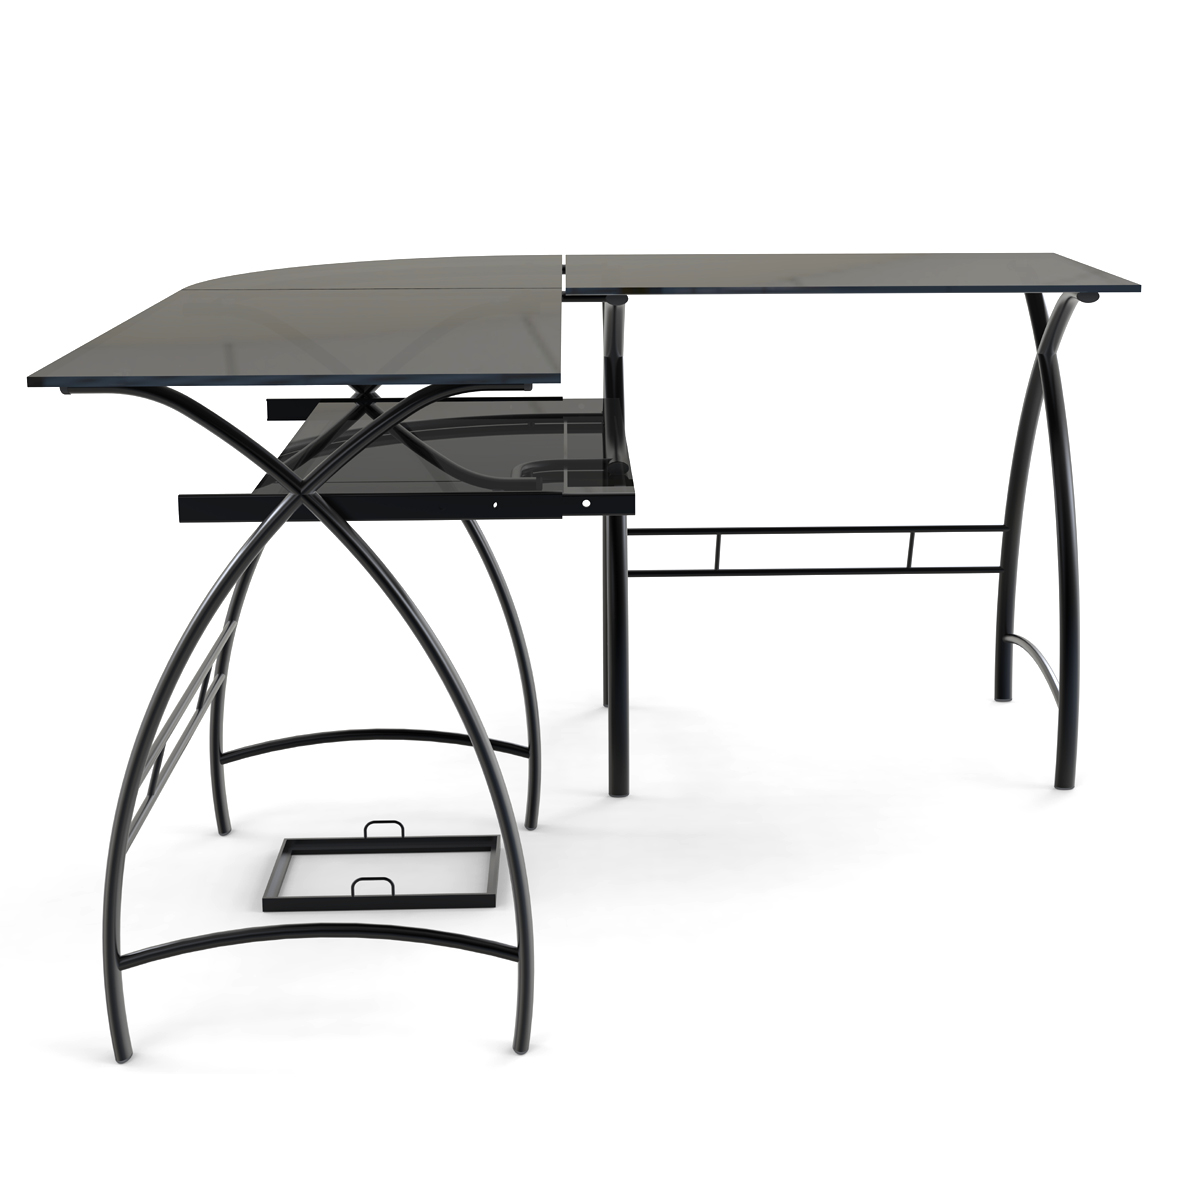 Stillman L Shaped Desk in Black